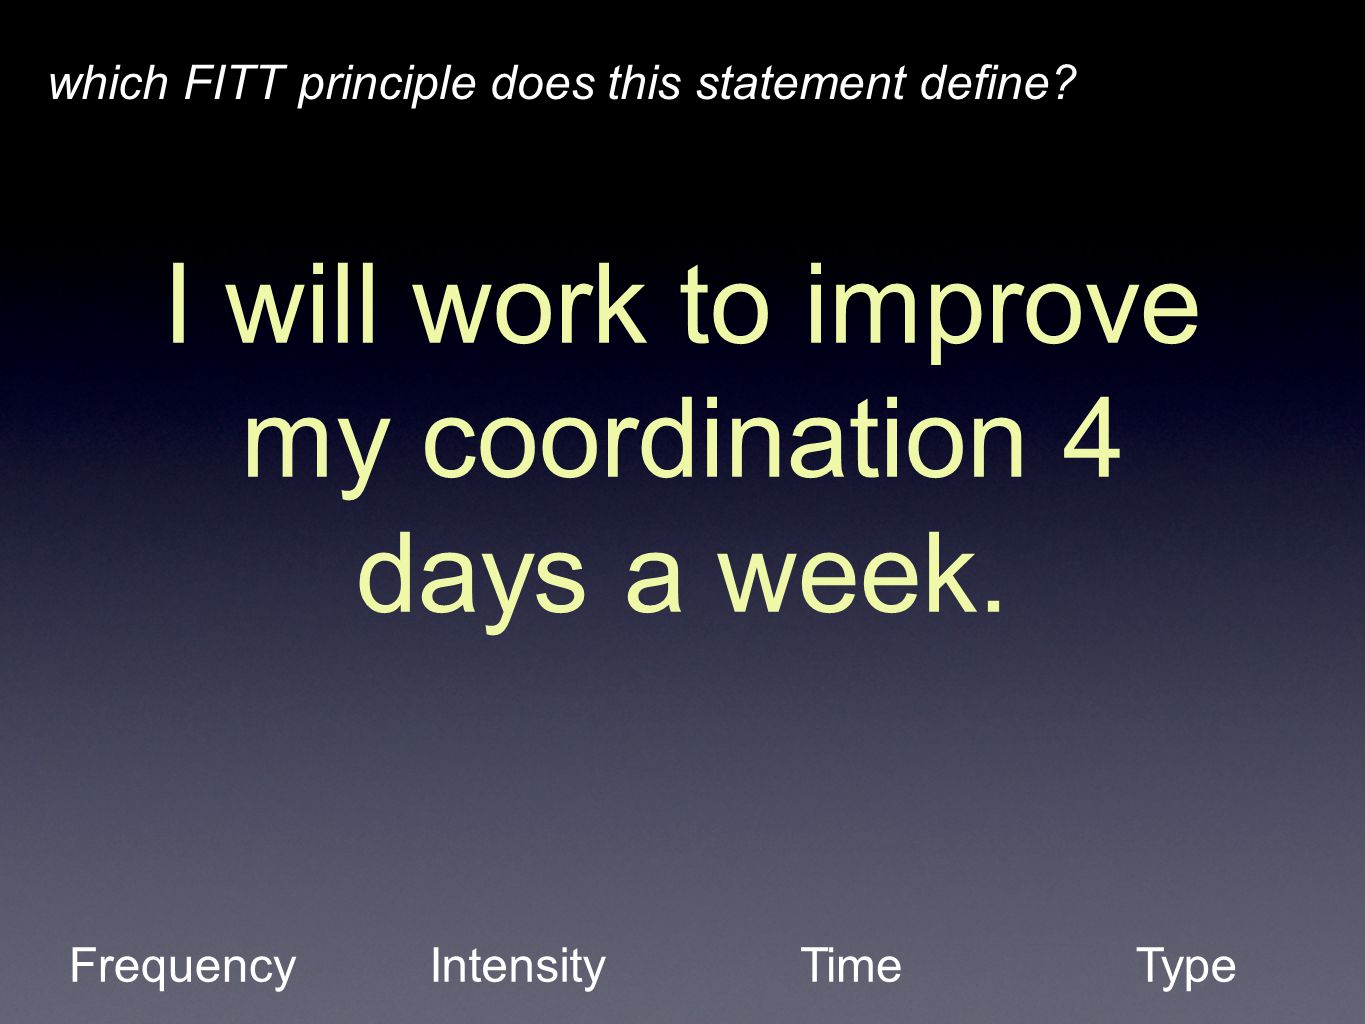 I will work to improve my coordination 4 days a week.